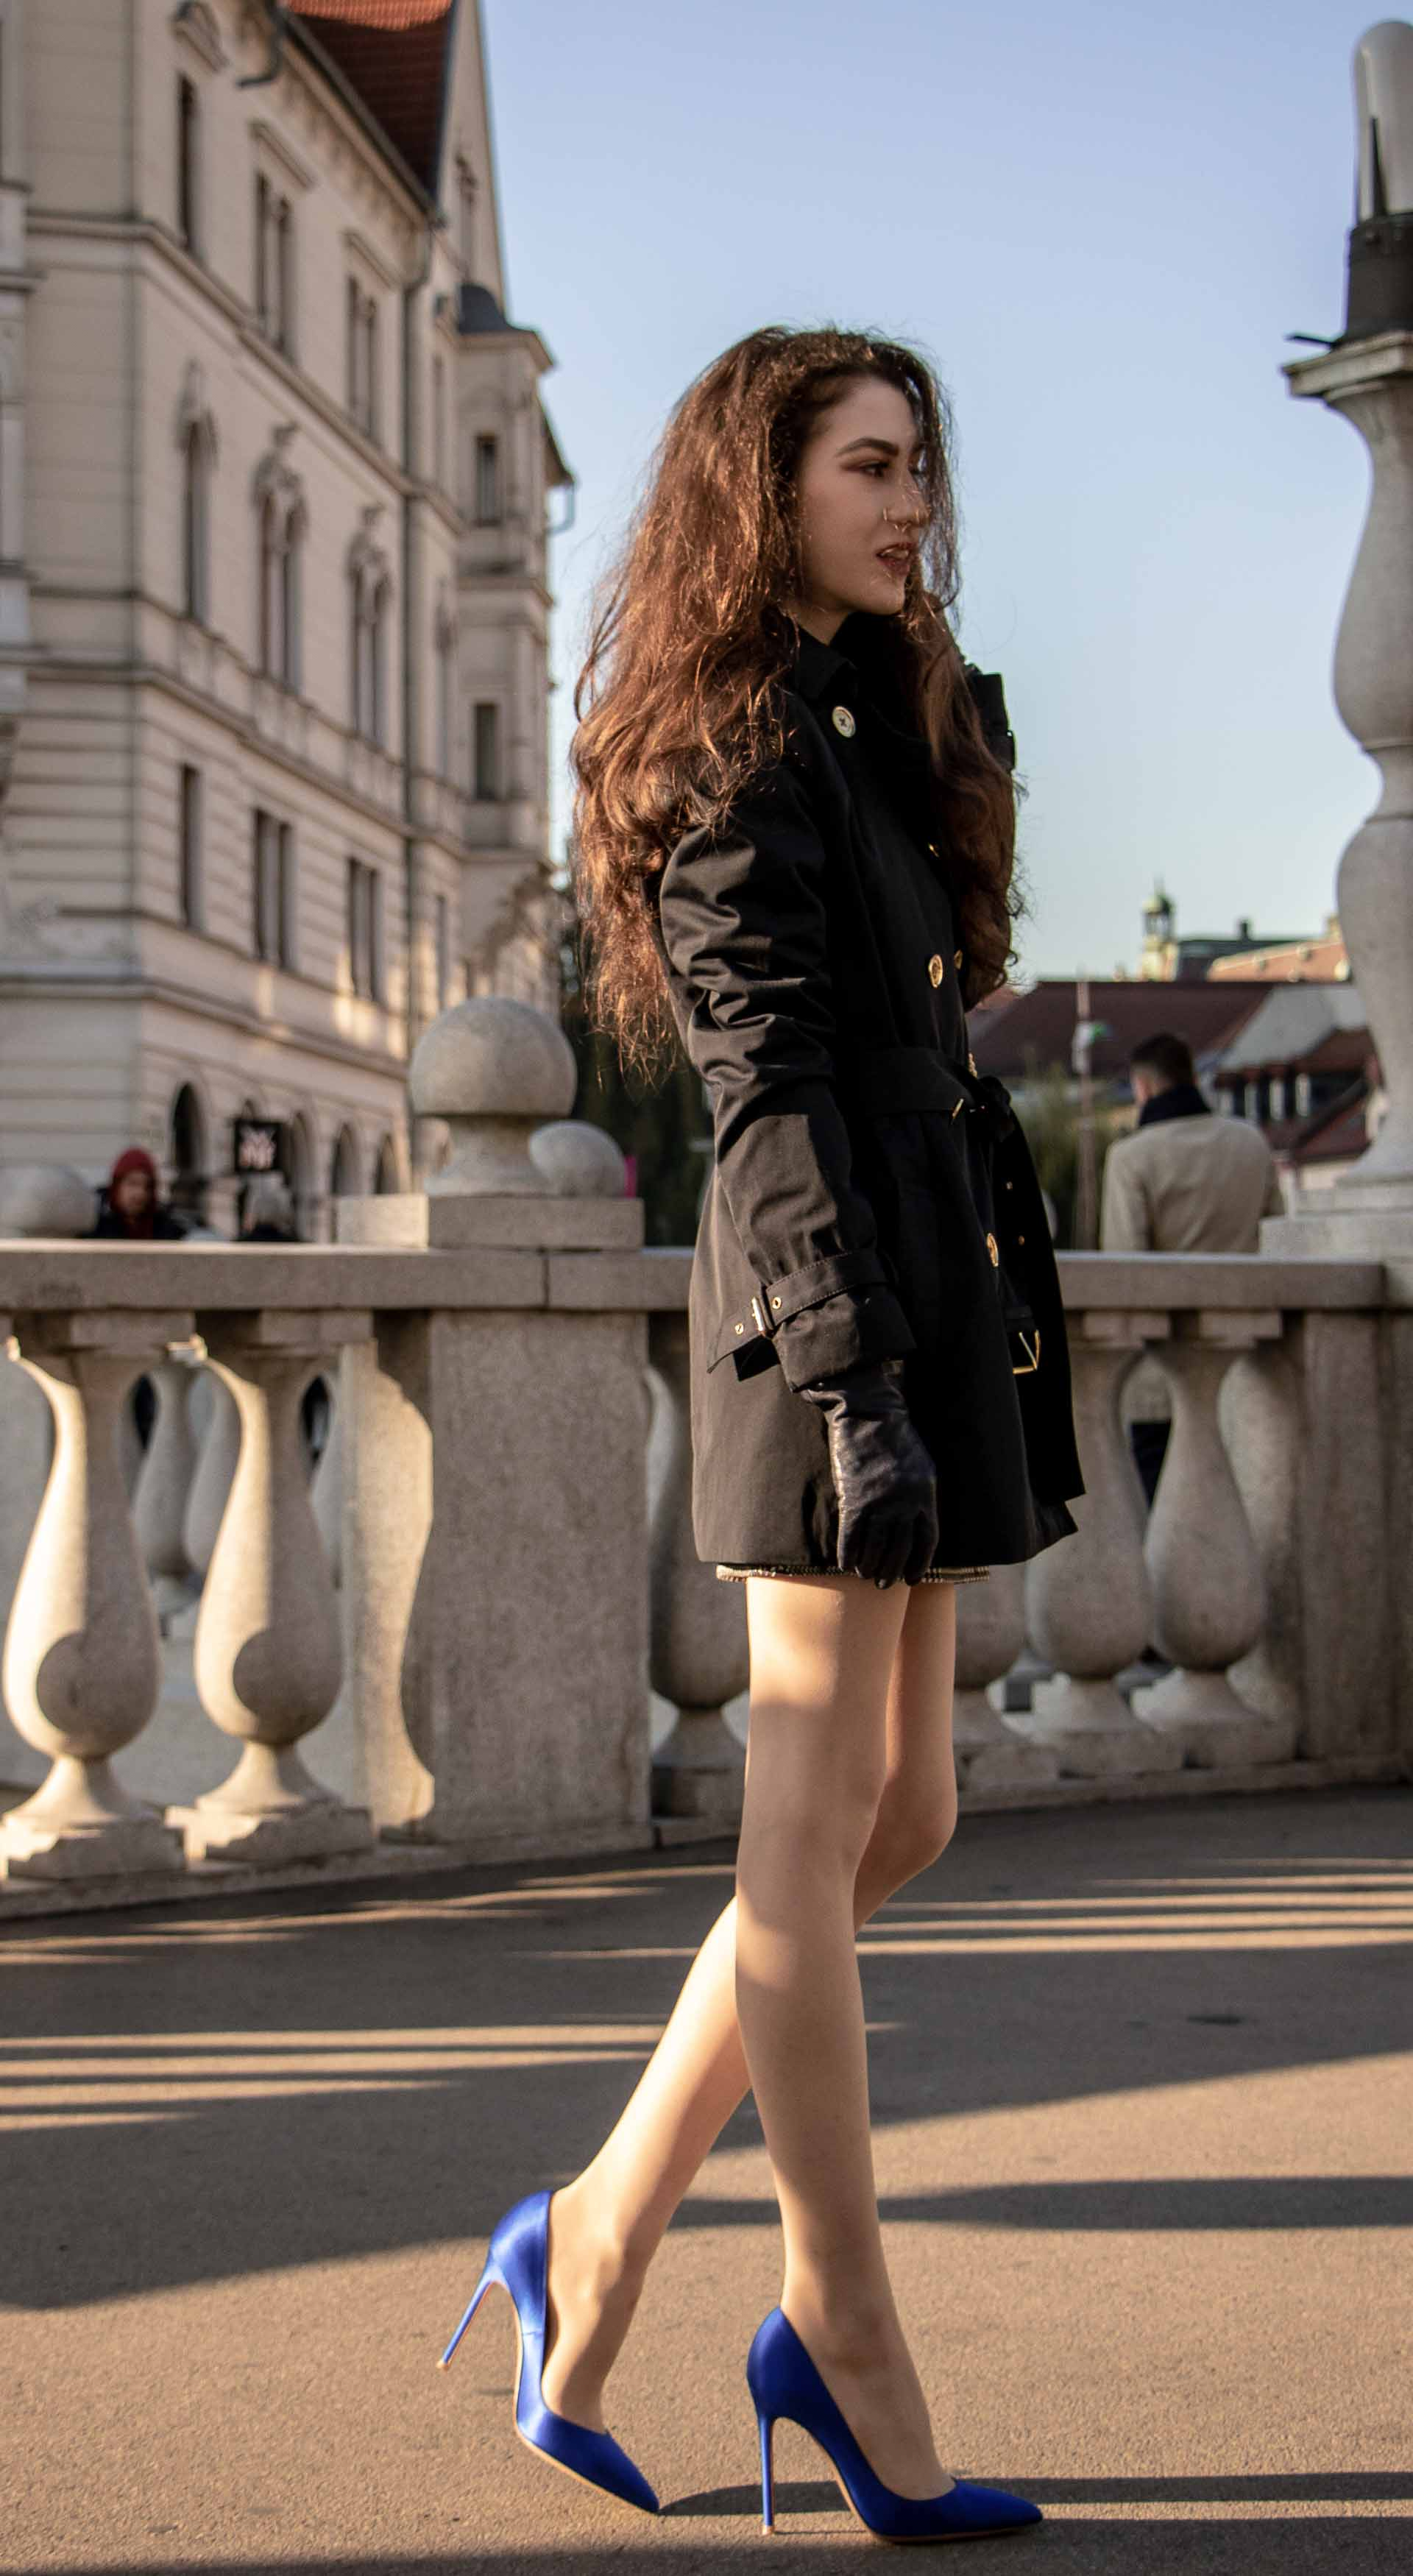 Beautiful Slovenian Fashion Blogger Veronika Lipar of Brunette from Wall wearing dark navy Michael Kors short trench coat, Gianvito Rossi blue satin court shoes, white chain shoulder bag walking home after night out